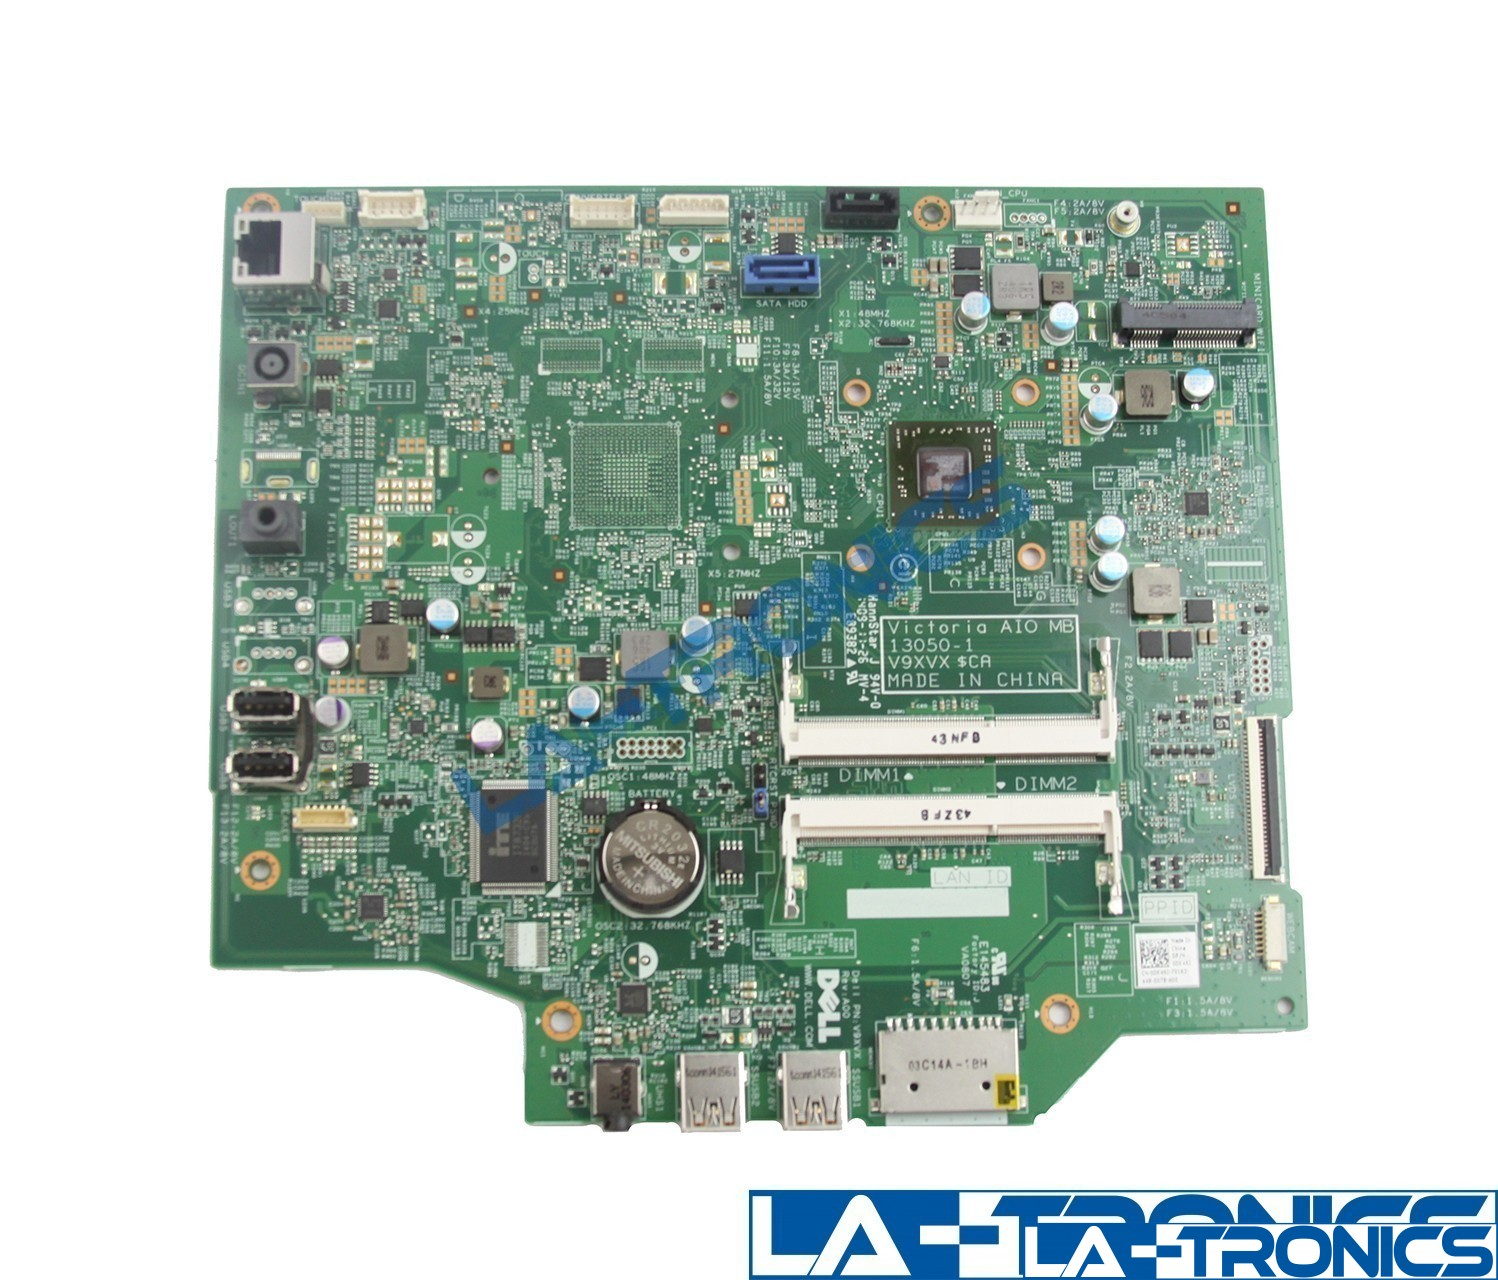 Genuine Dell Inspiron 20 3045 All In One AMD A4-5000 1.40GHz CPU Motherboard